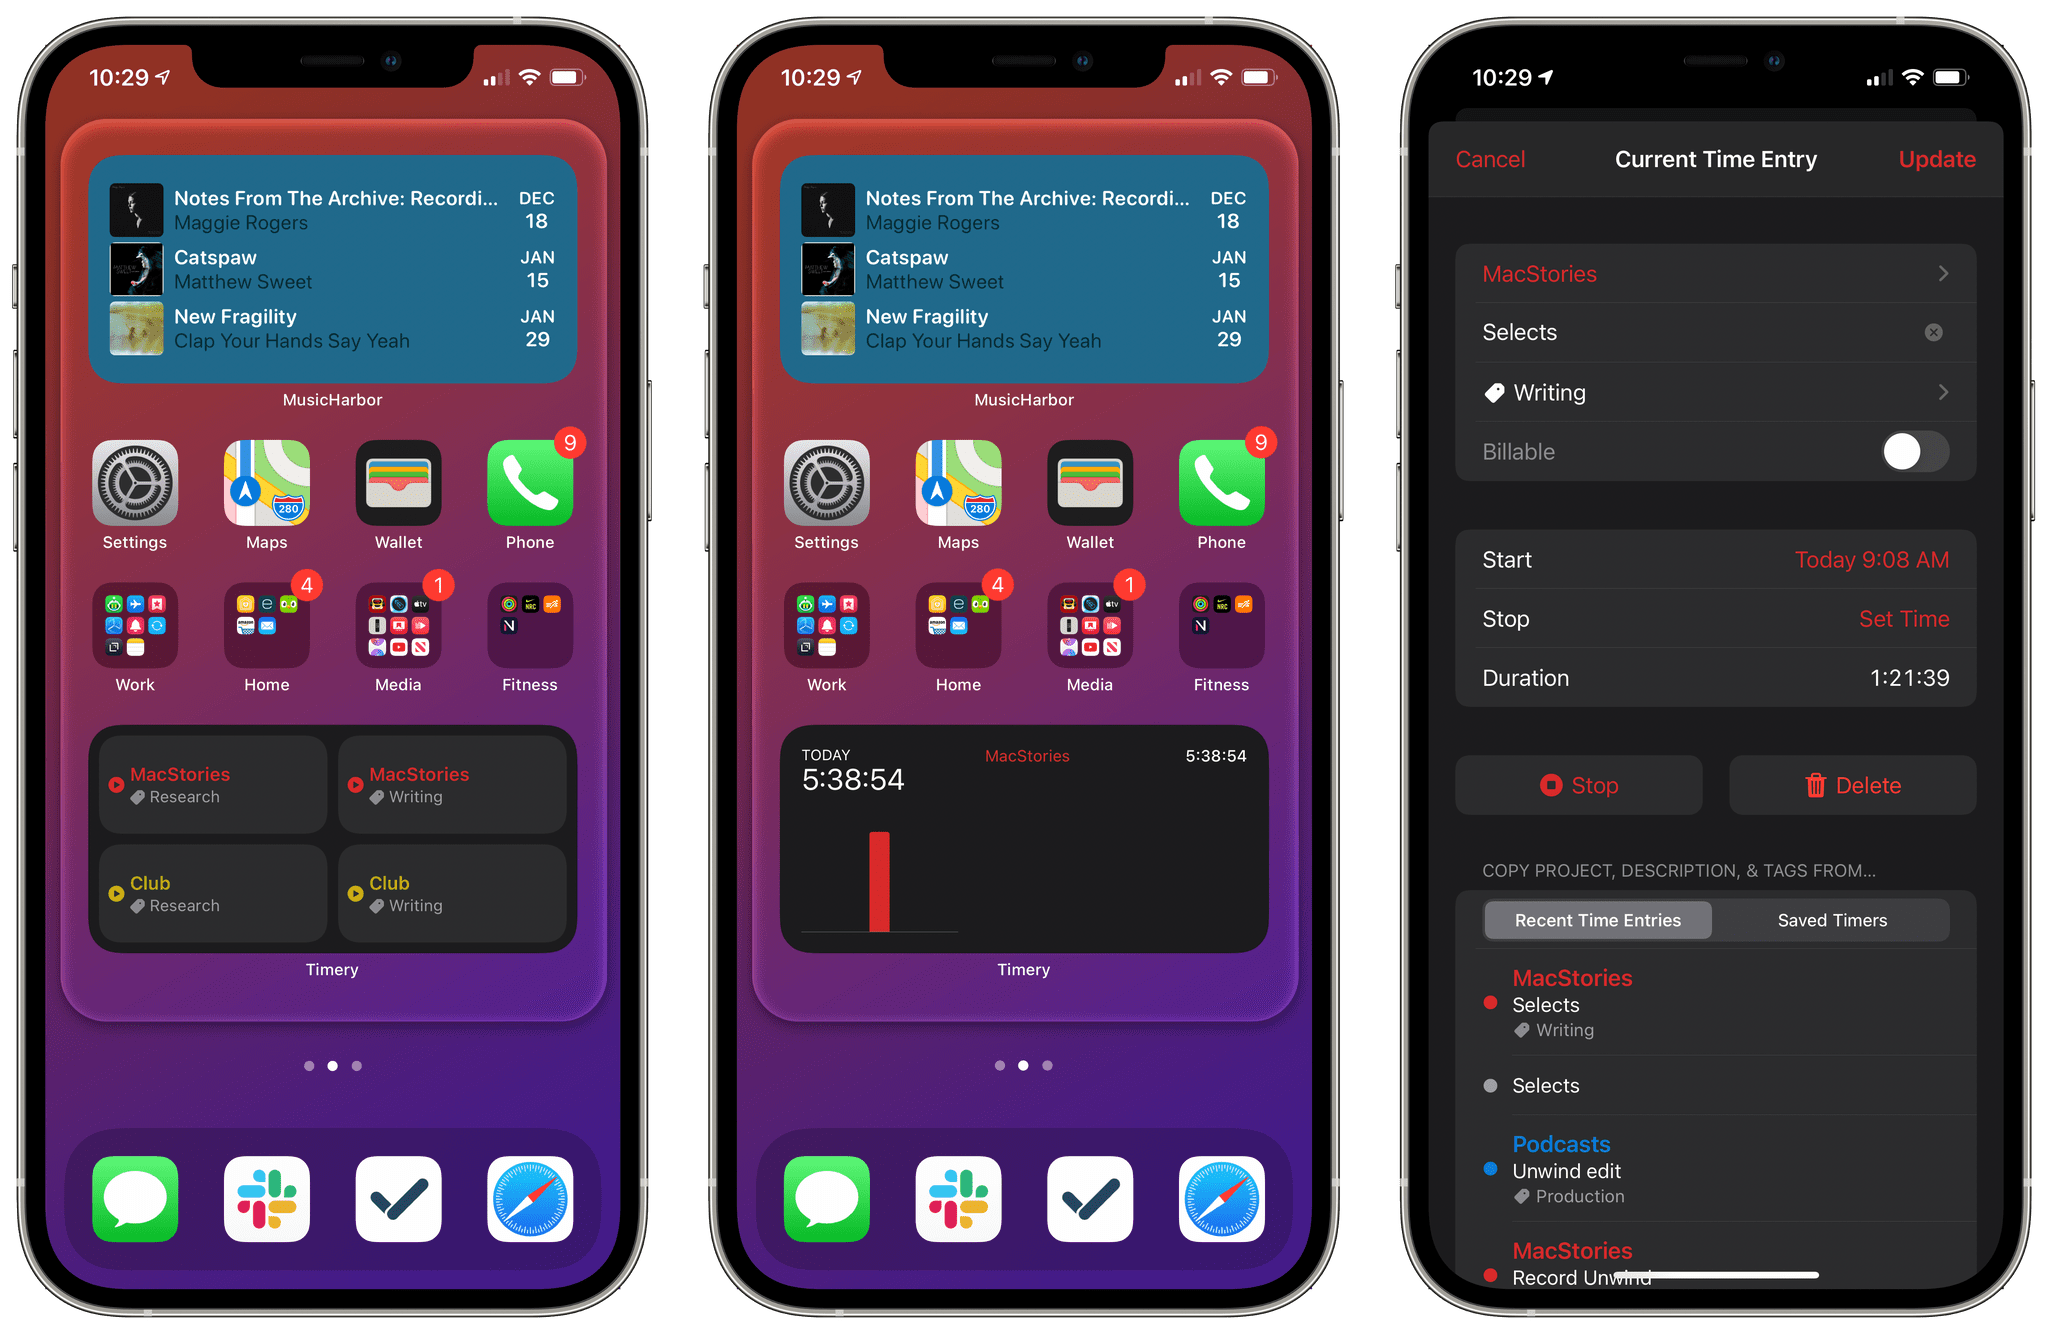 iOS 14 means Timery's widgets are no longer as interactive as before, but the app's trio of new widgets more than makes up for it in new functionality.